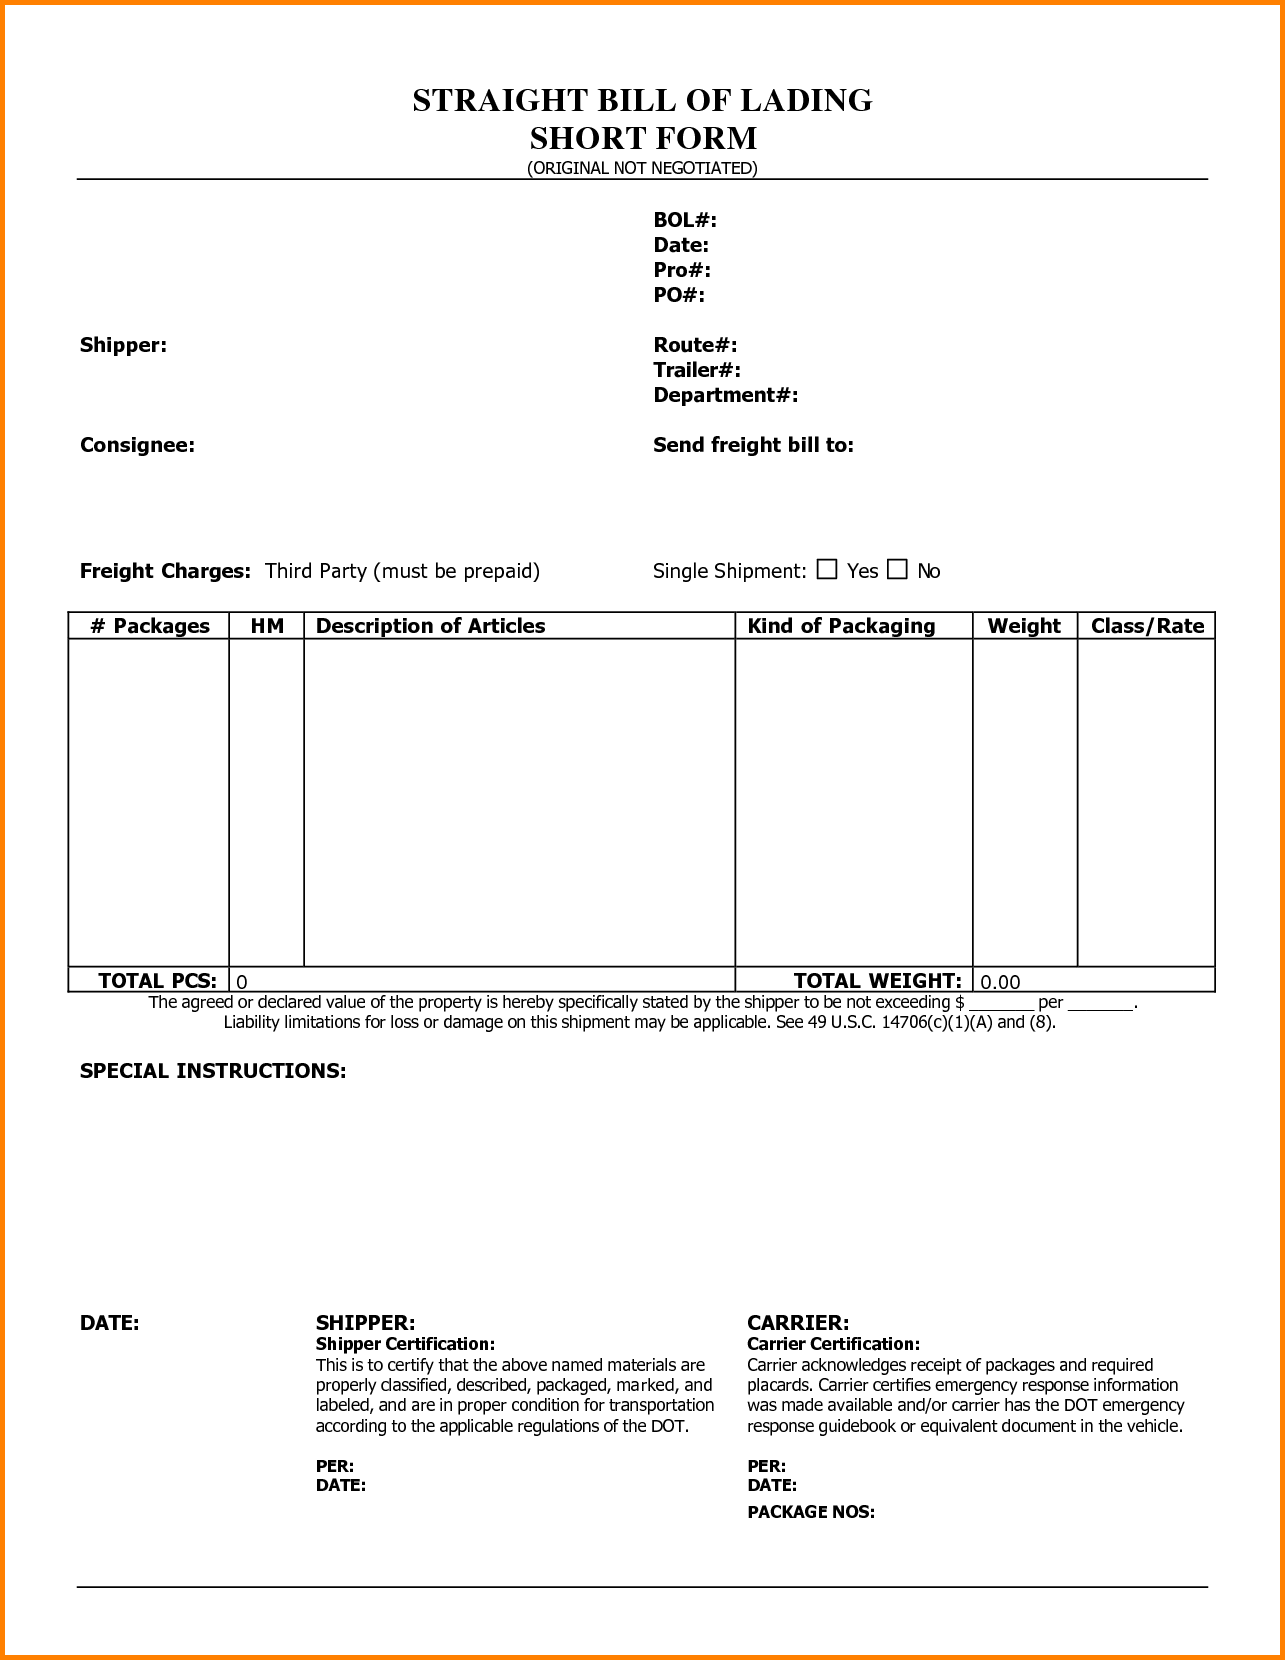 Ocean Bill Of Lading Template and Straight Bill Of Lading Short form Bill Of Lading Short form